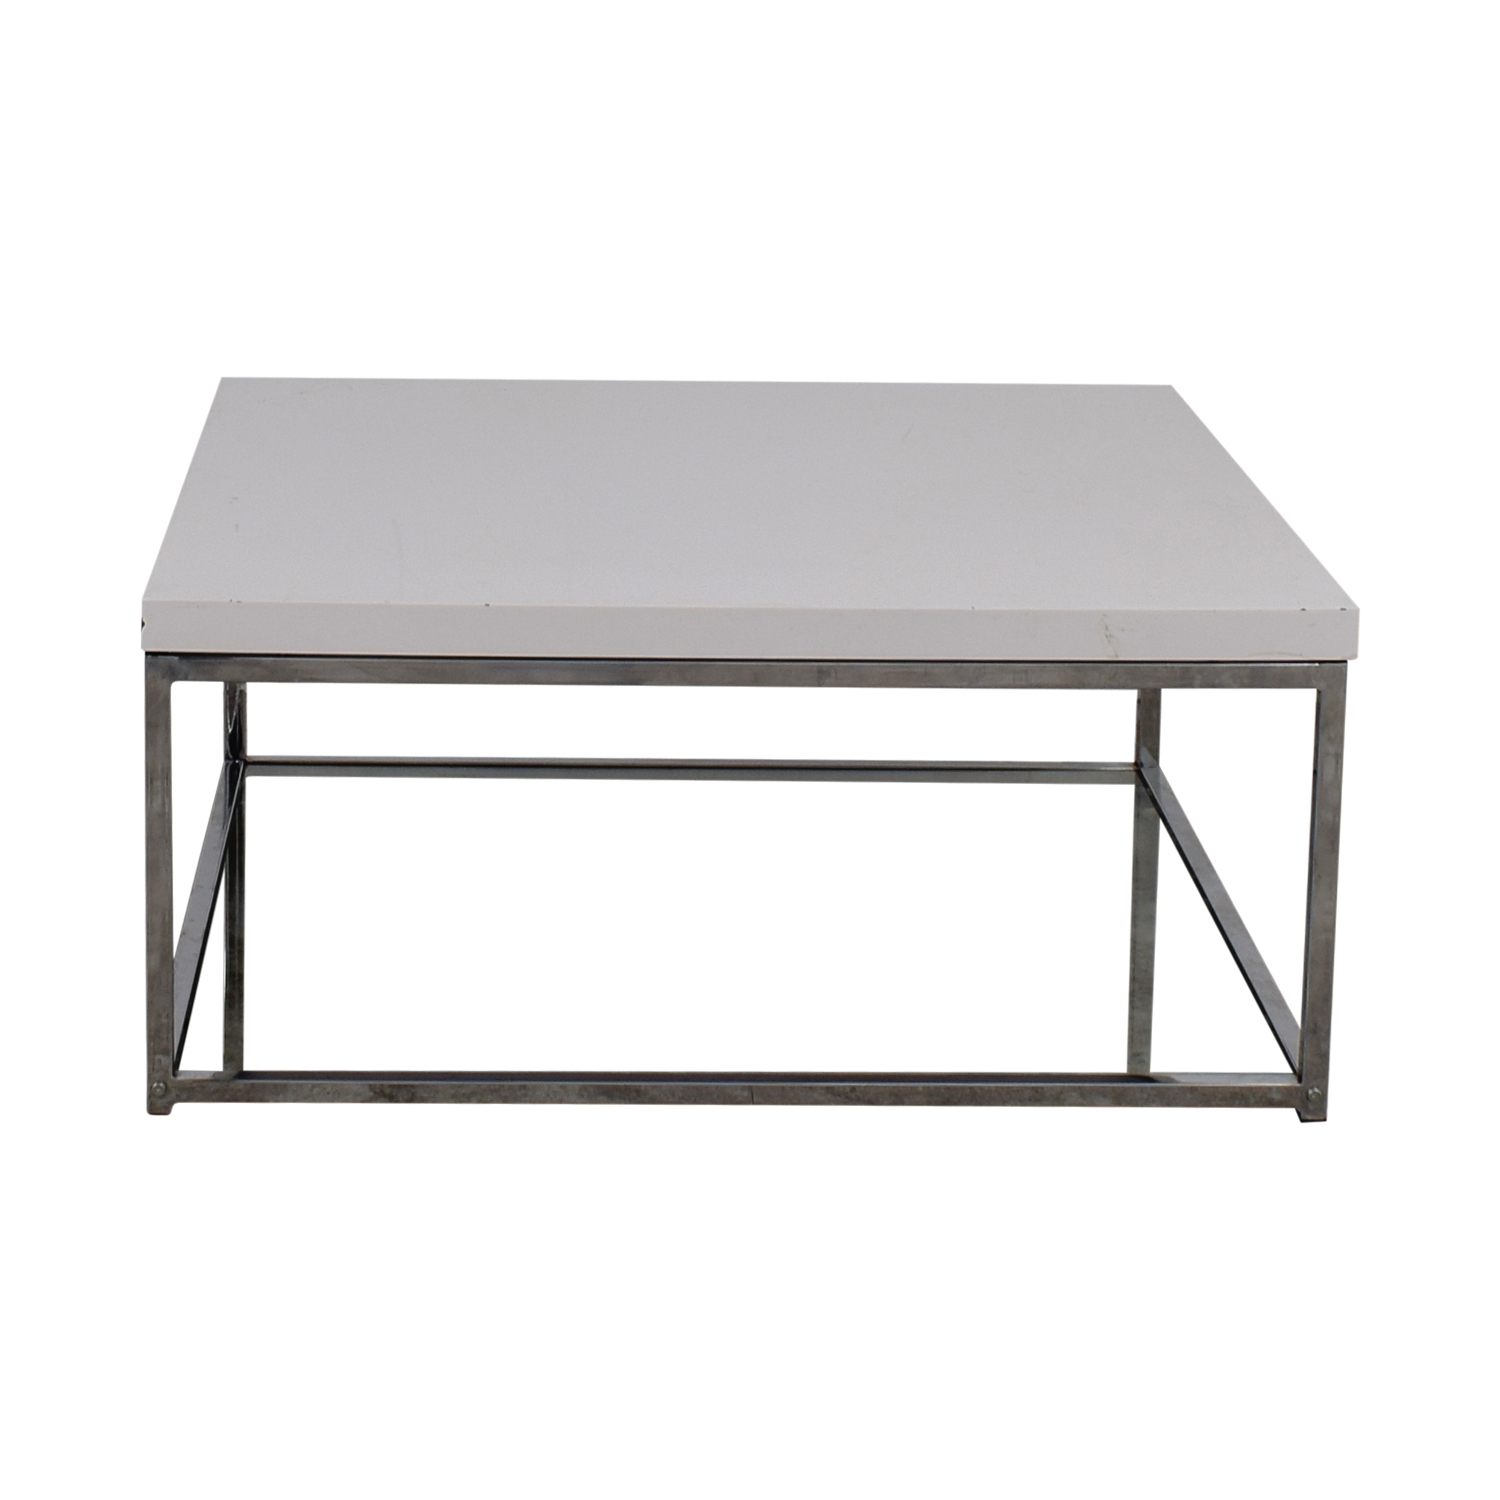 buy Safavieh Safavieh Malone White Square Coffee Table online